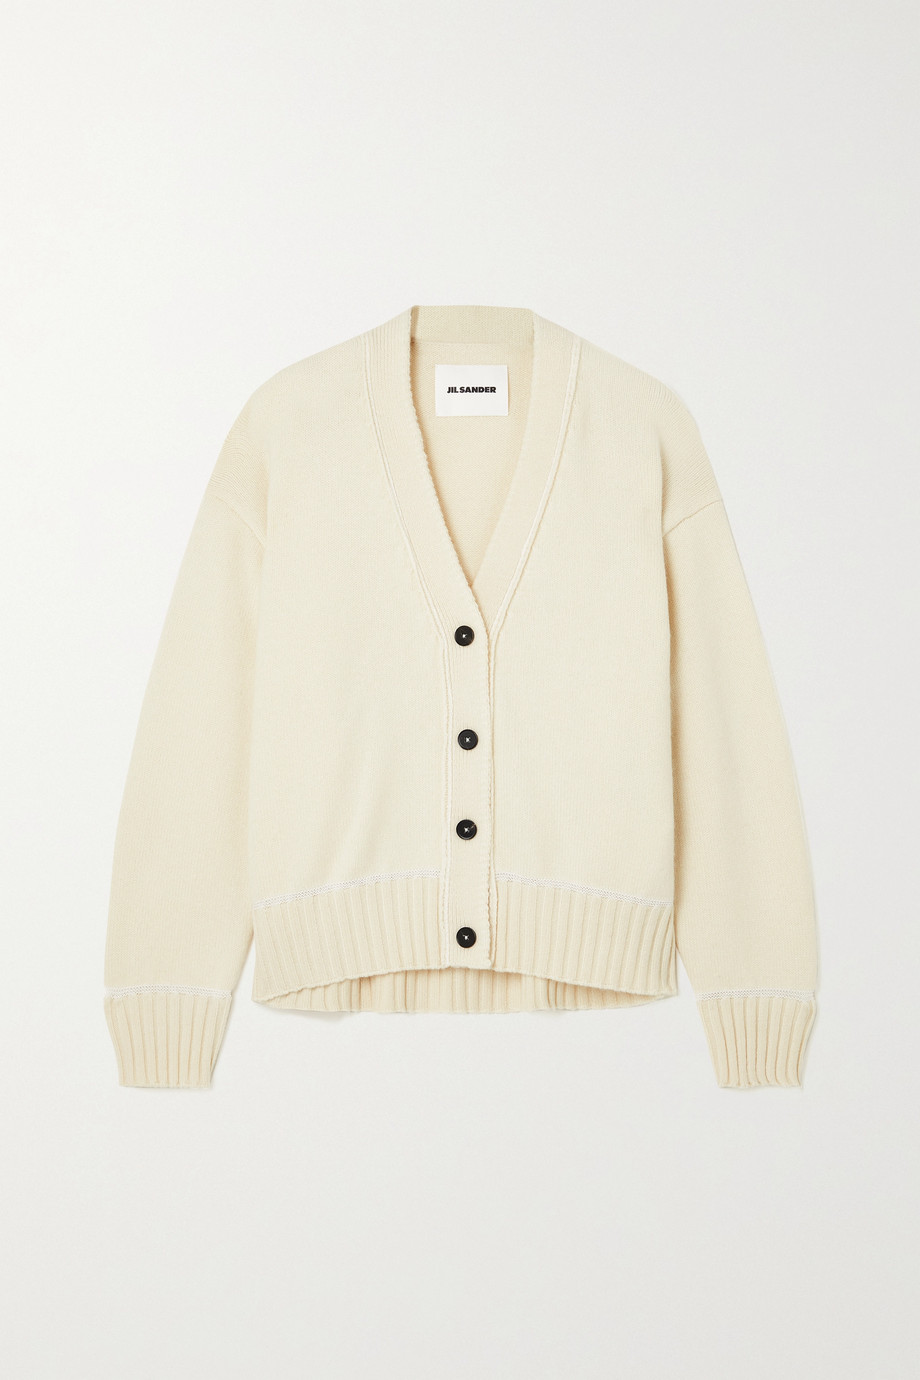 Jil Sander Wool and alpaca-blend cardigan